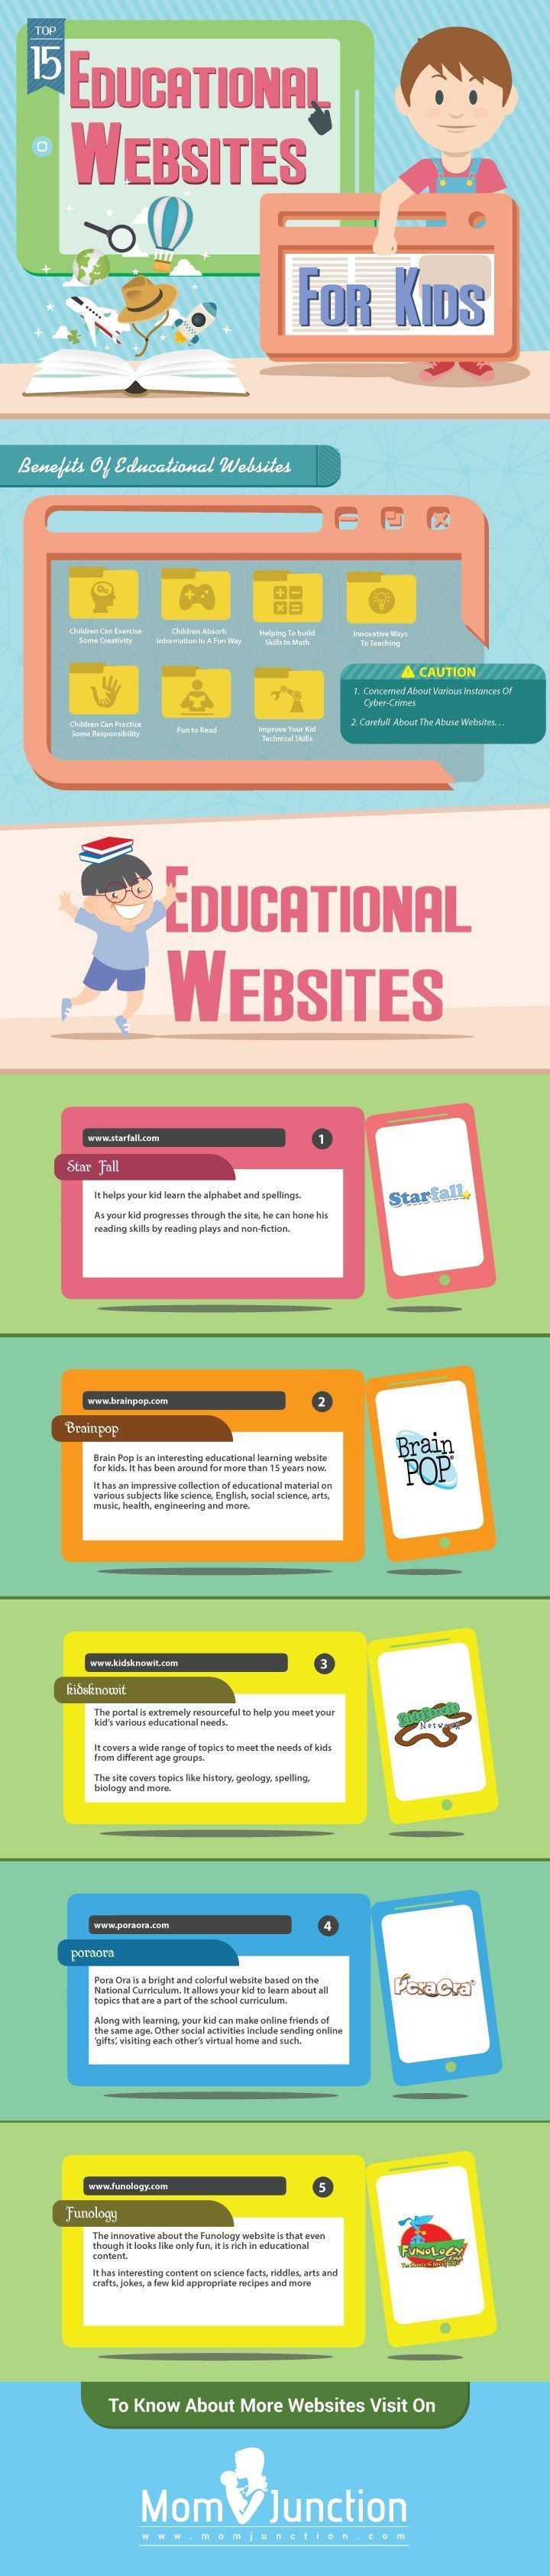 9 best images about Education Infographics on Pinterest